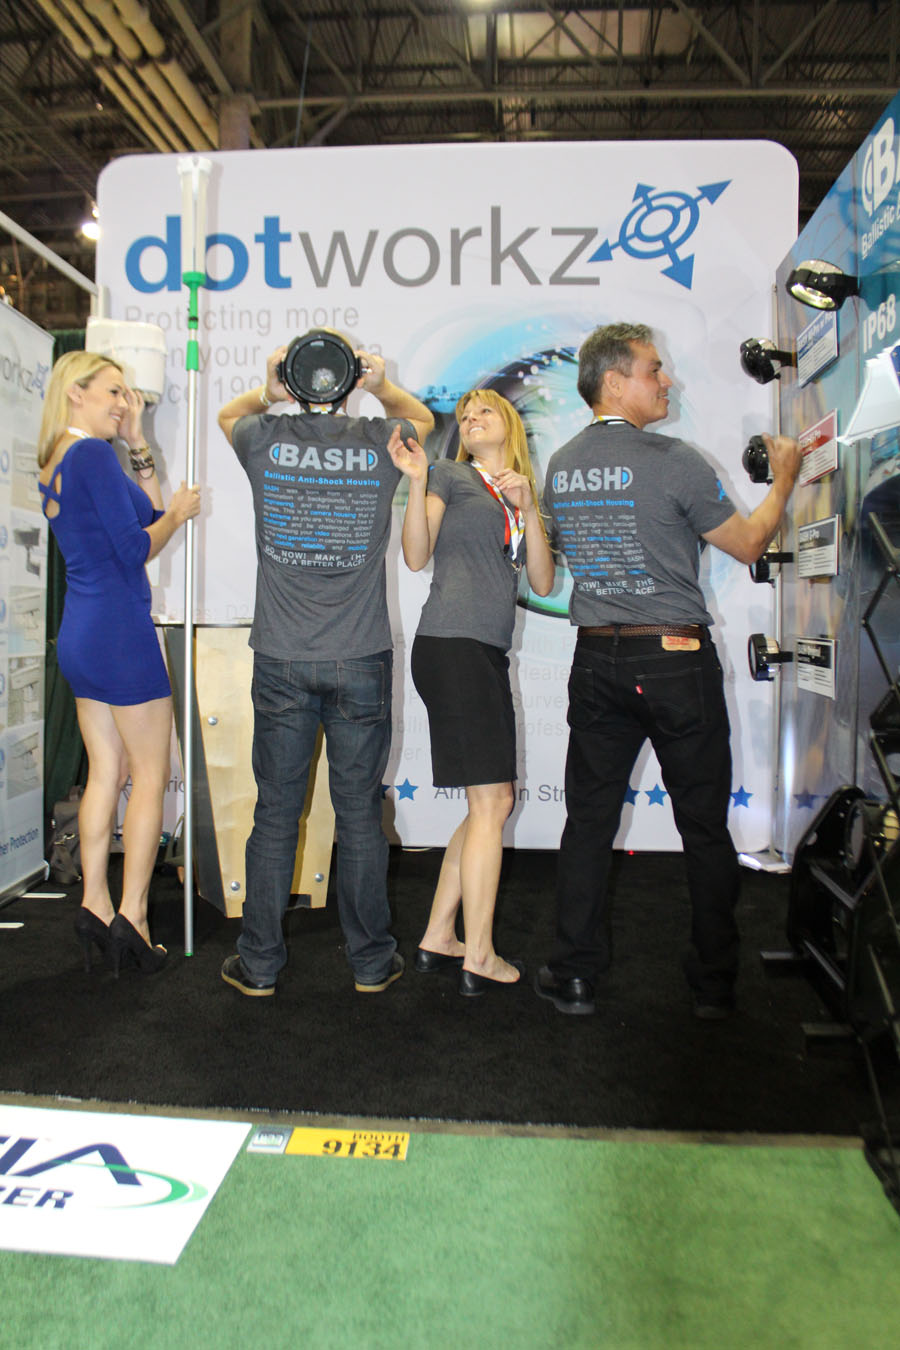 dotworkz 2015 trade show photos isc west 2015 02